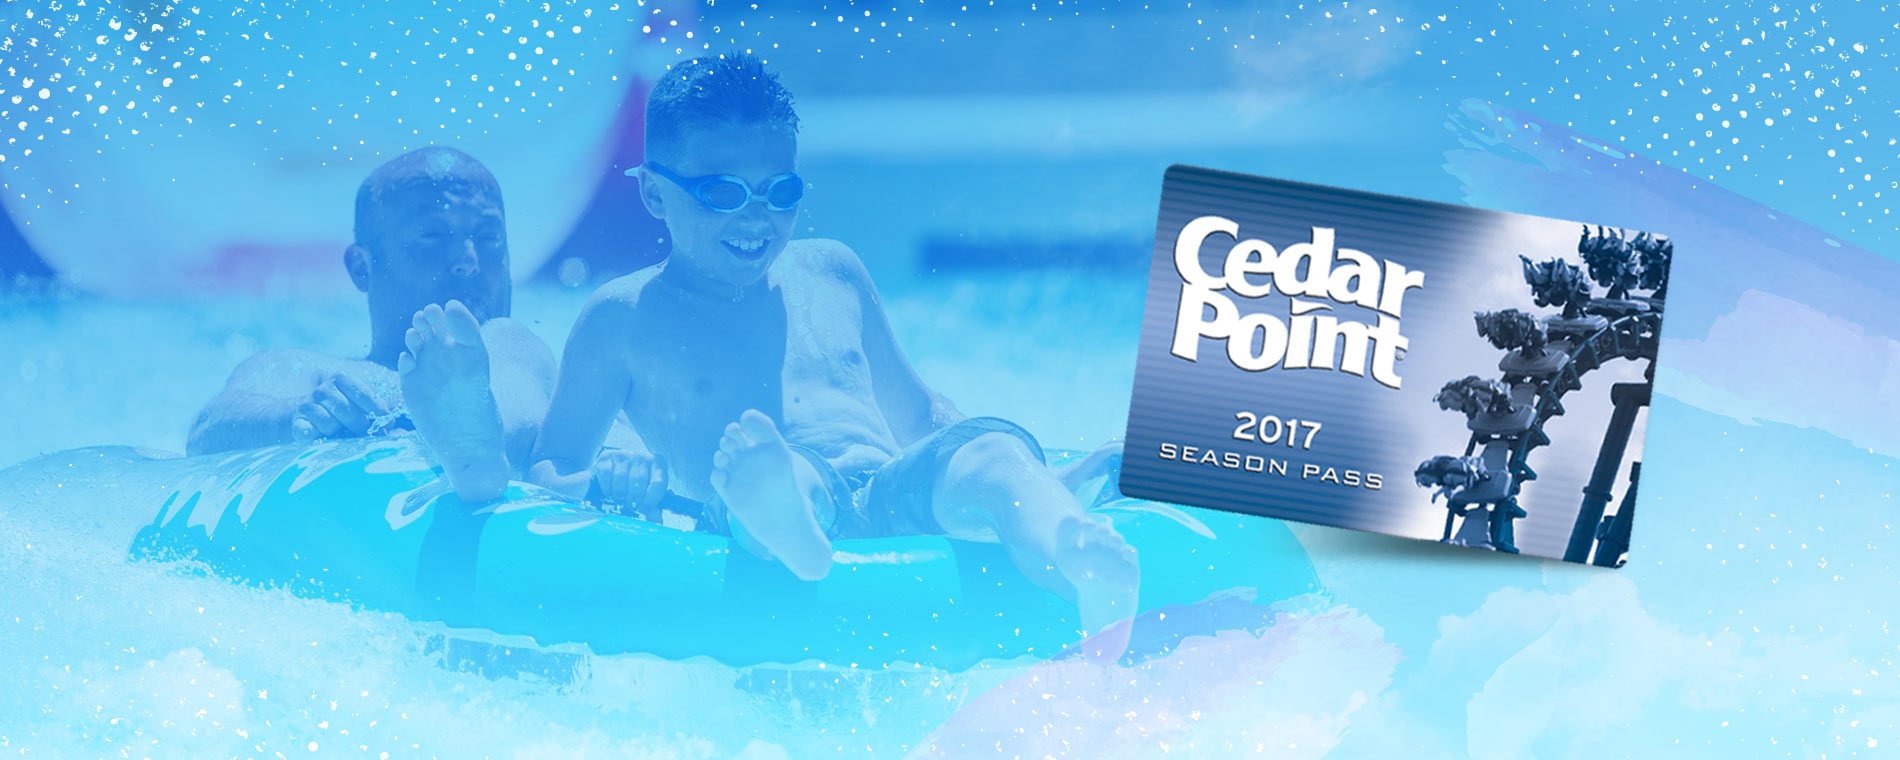 Free Cedar Point Shores when You Buy a Regular Season Pass